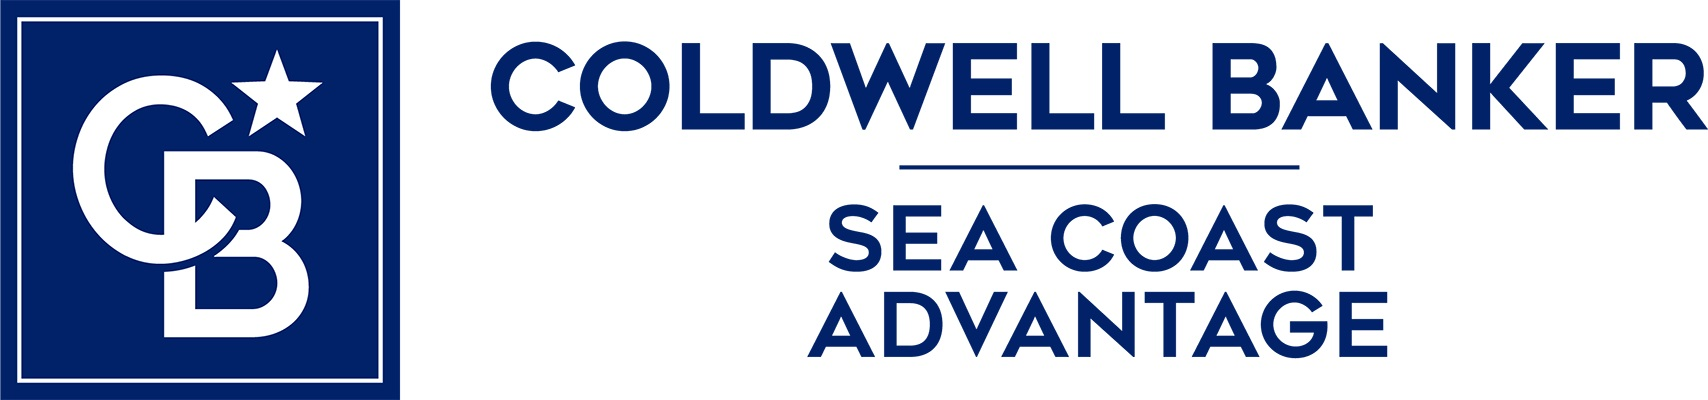 Deborah Feldman - Coldwell Banker Sea Coast Advantage Realty